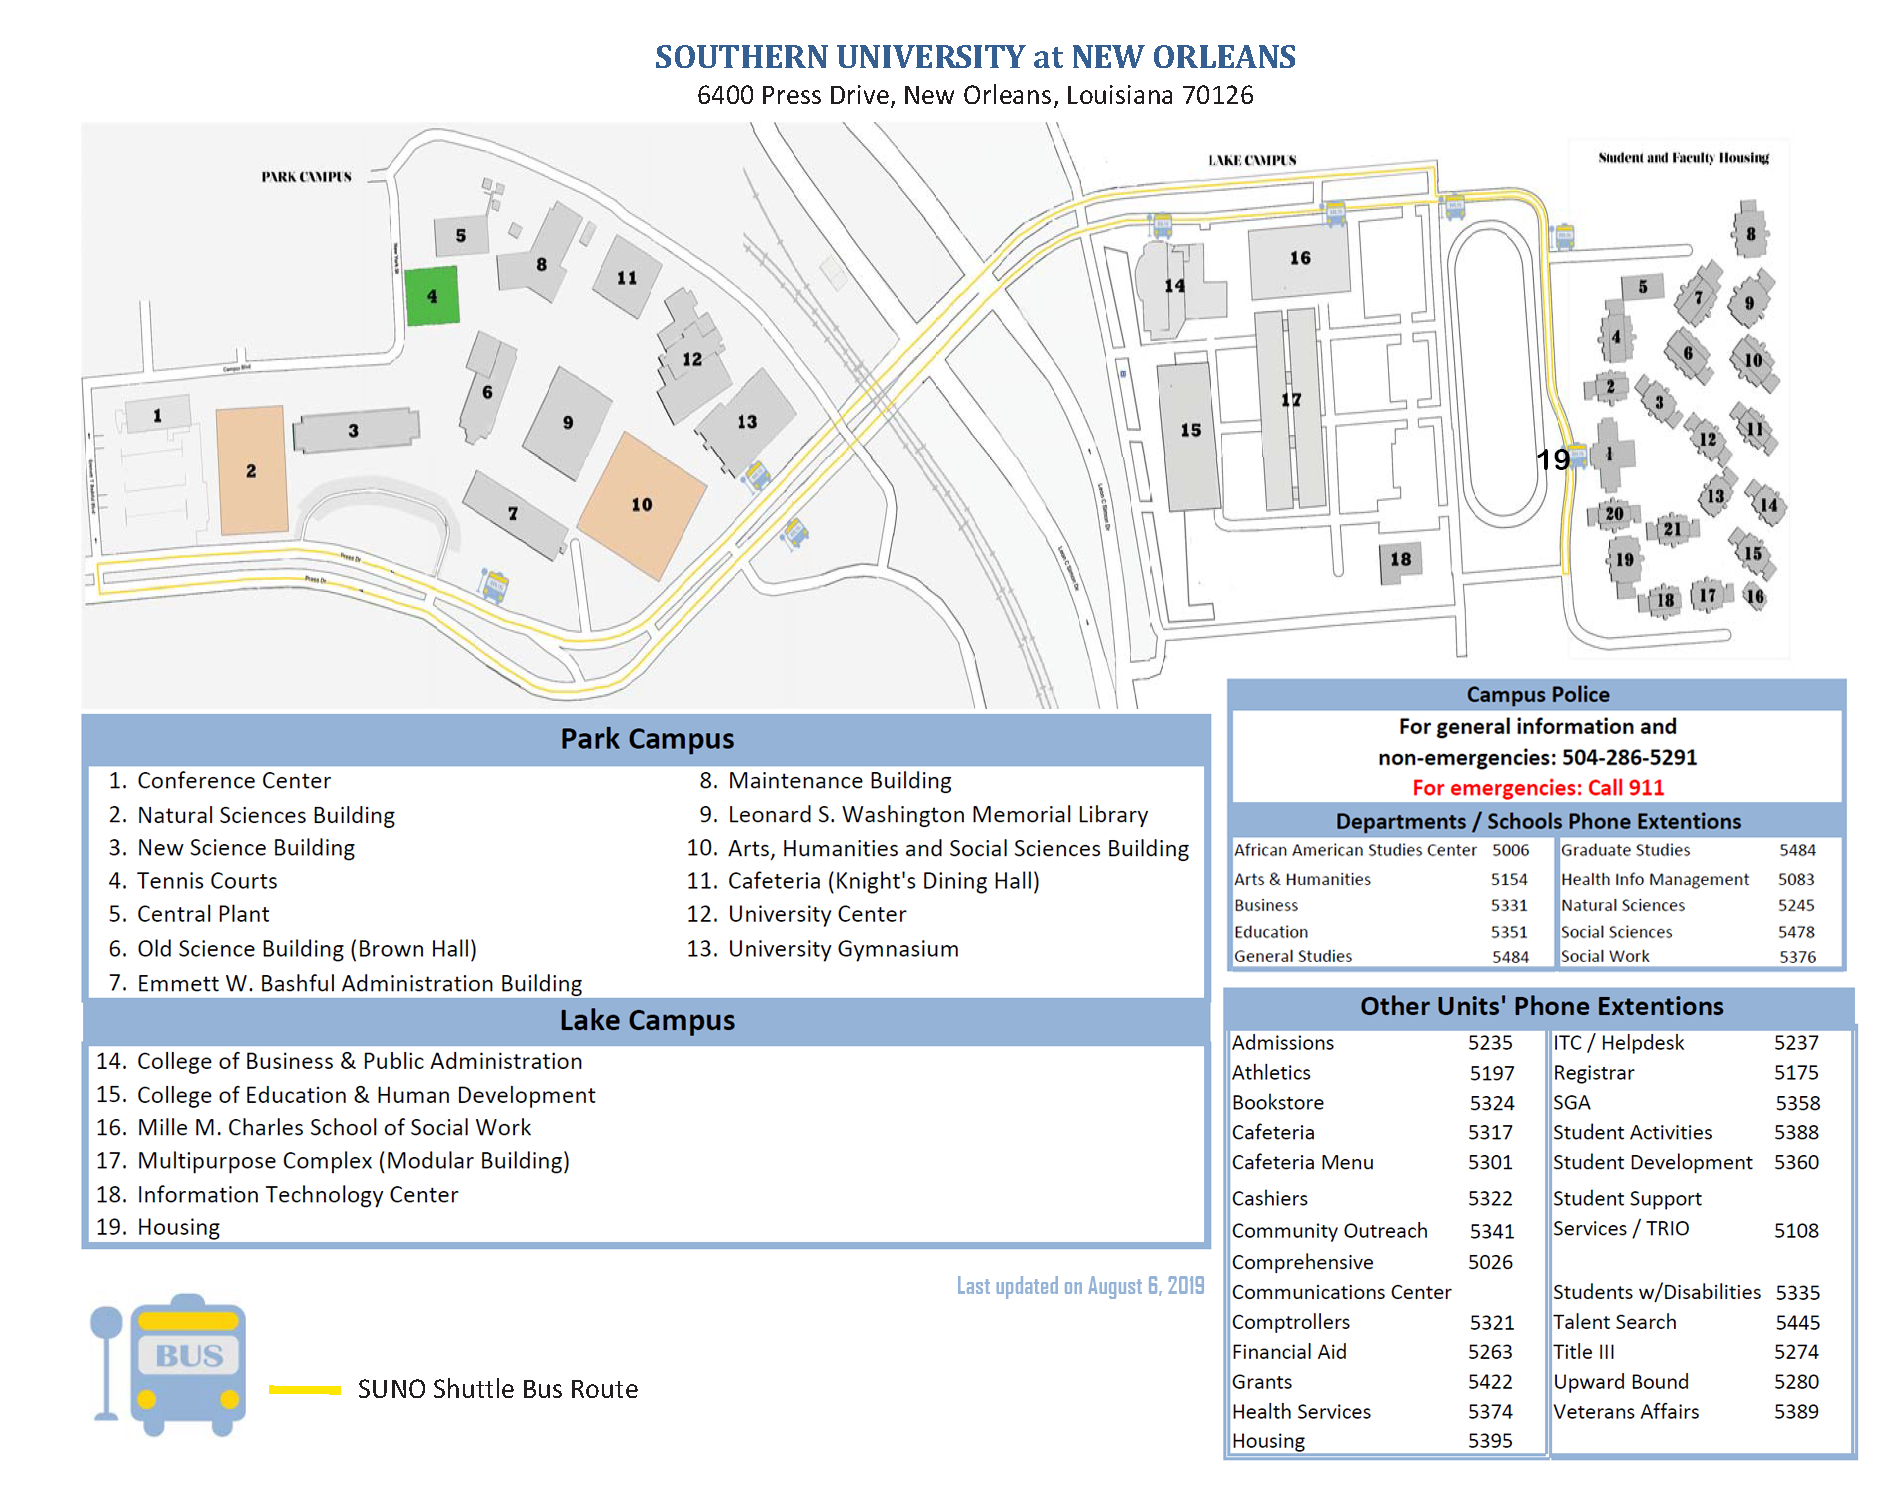 Maps and Directions | Southern University at New Orleans Map Directions From on travel directions, mapquest directions, scale directions, compass directions, giving directions, traffic directions, get directions, driving directions,